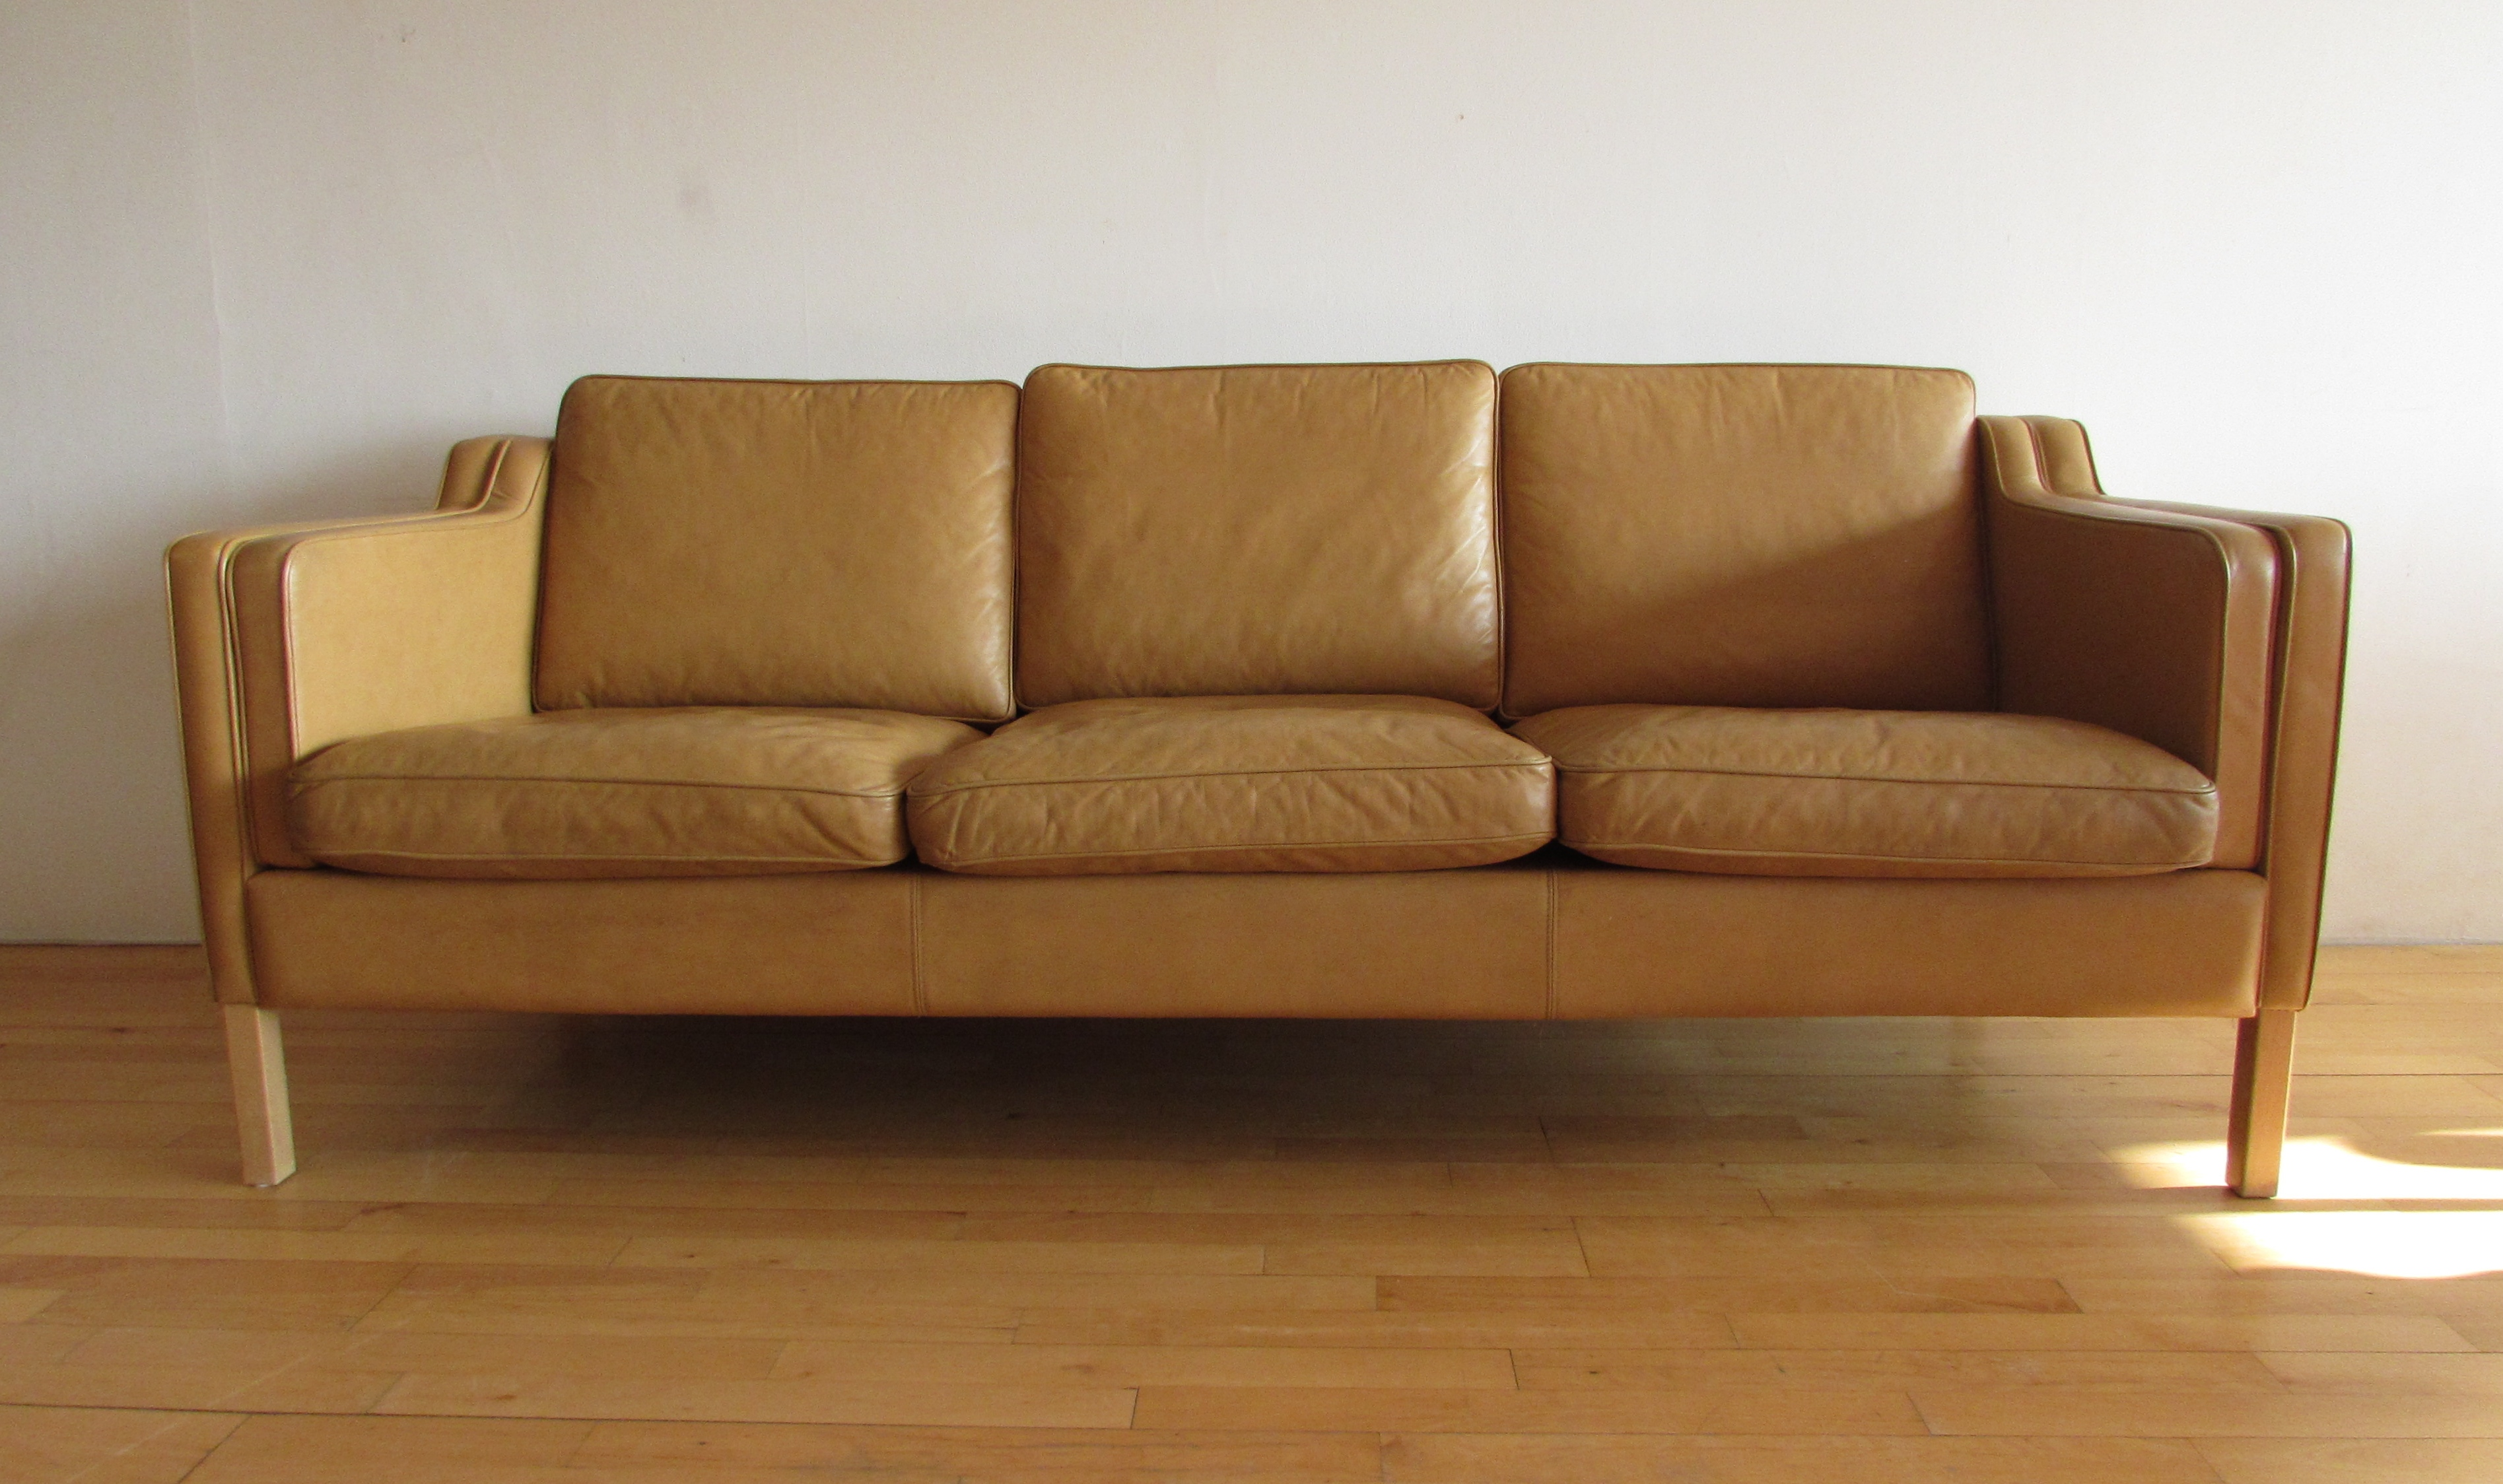 Leather Sofa - SOLD